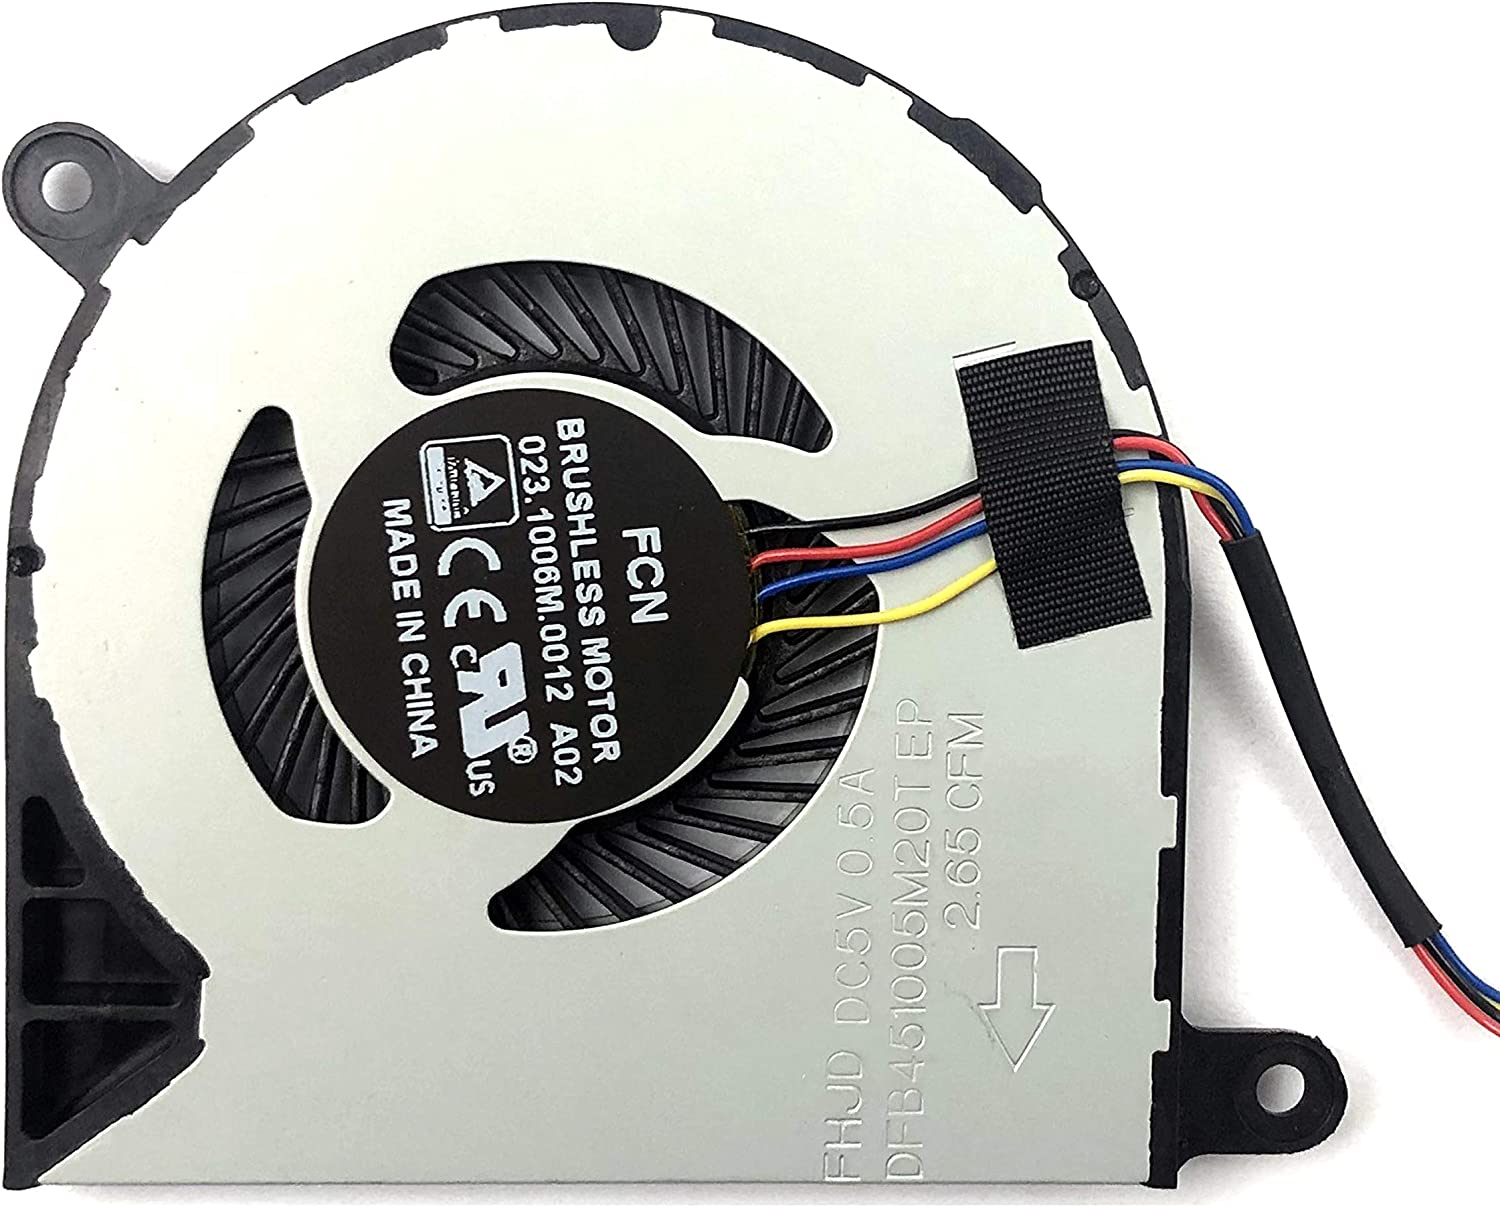 BestParts Replacement CPU Cooling Fan for Dell Inspiron 13 5368 5378 5379 7368 7375 7378,15 5568 5578 5579 7579 7569, Latitude 3390 3379 Series Laptop DP/N CN-031TPT